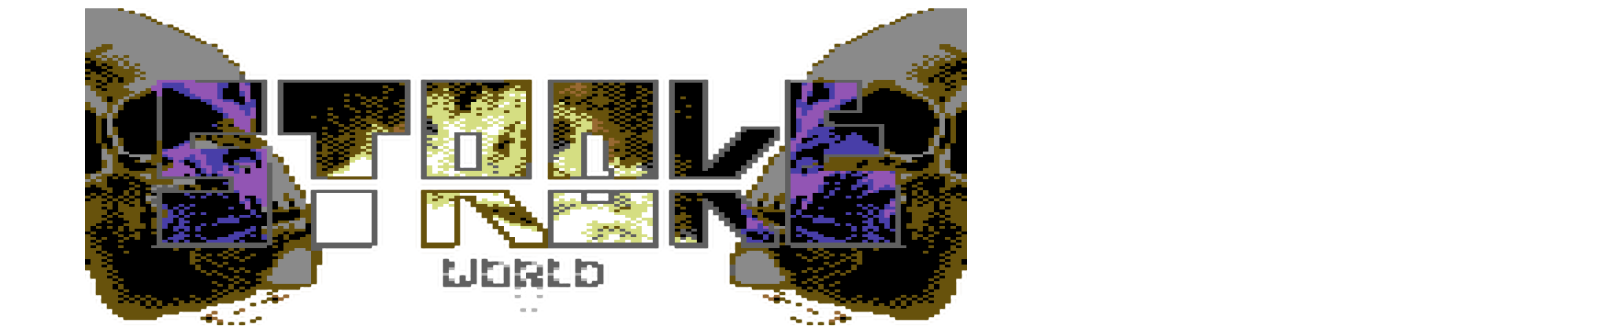 Stroke World (C64)